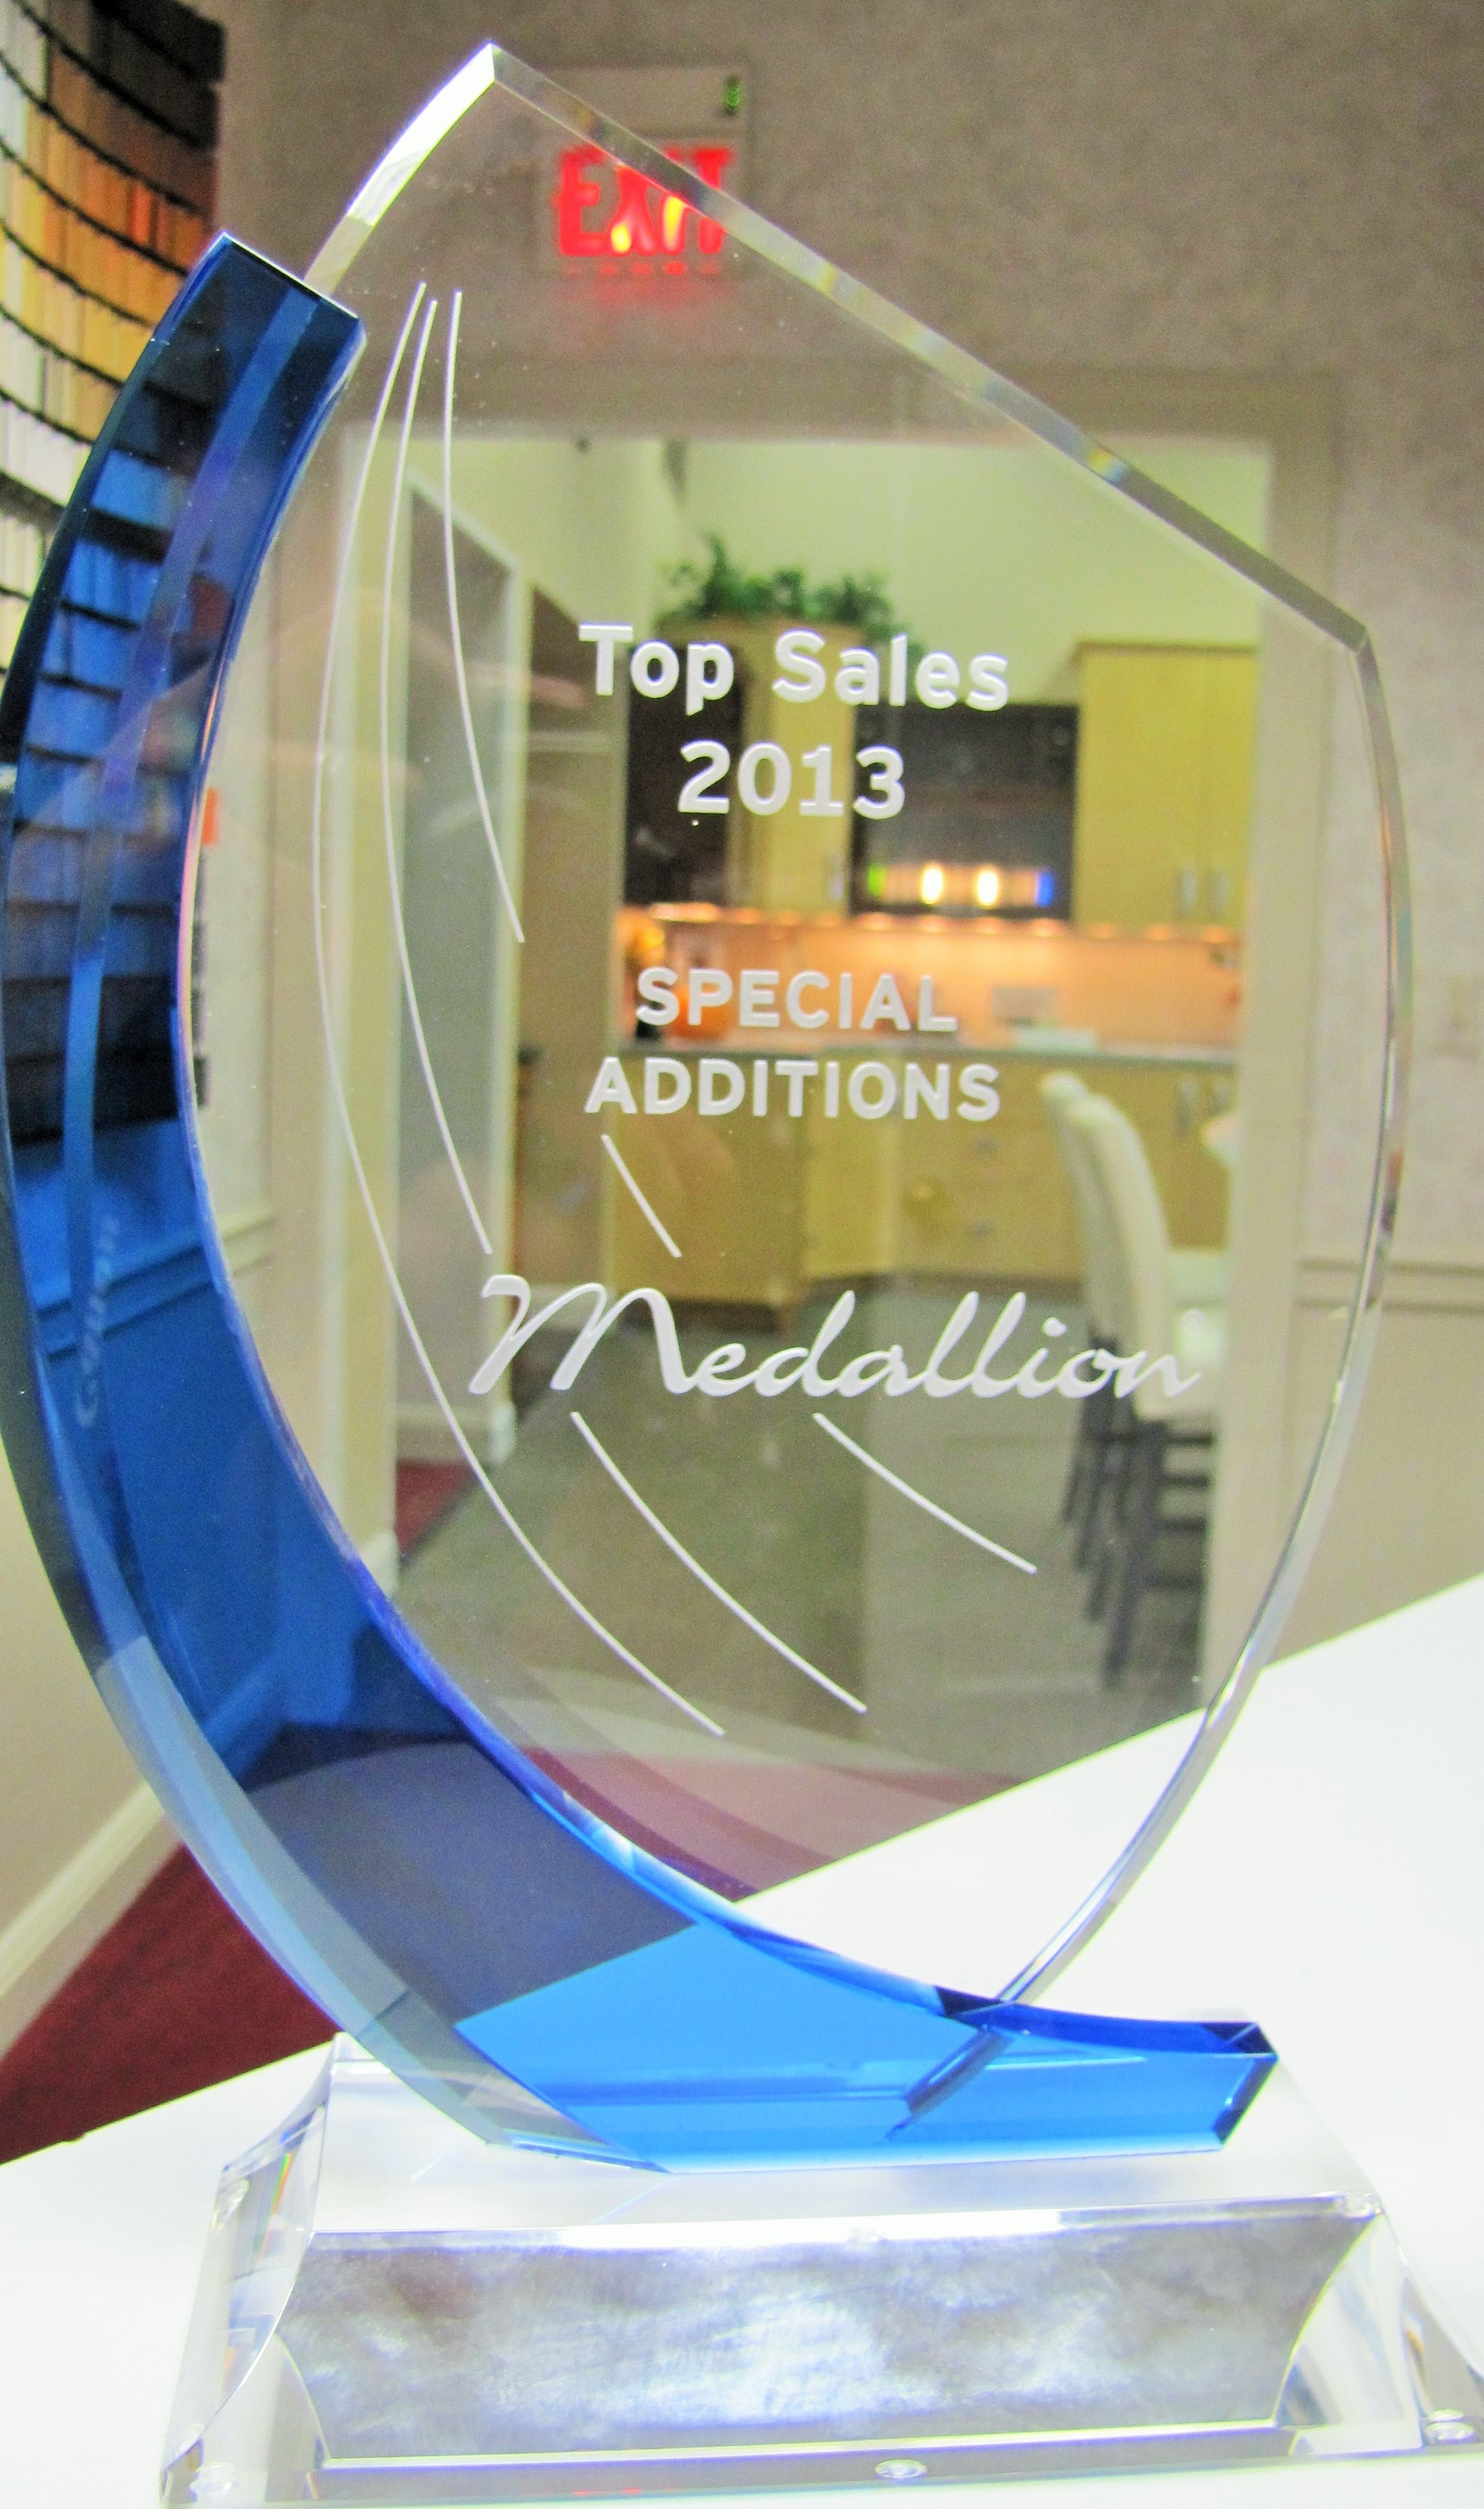 Top sales 2013 award from medallion special additions for Bathroom design awards 2013